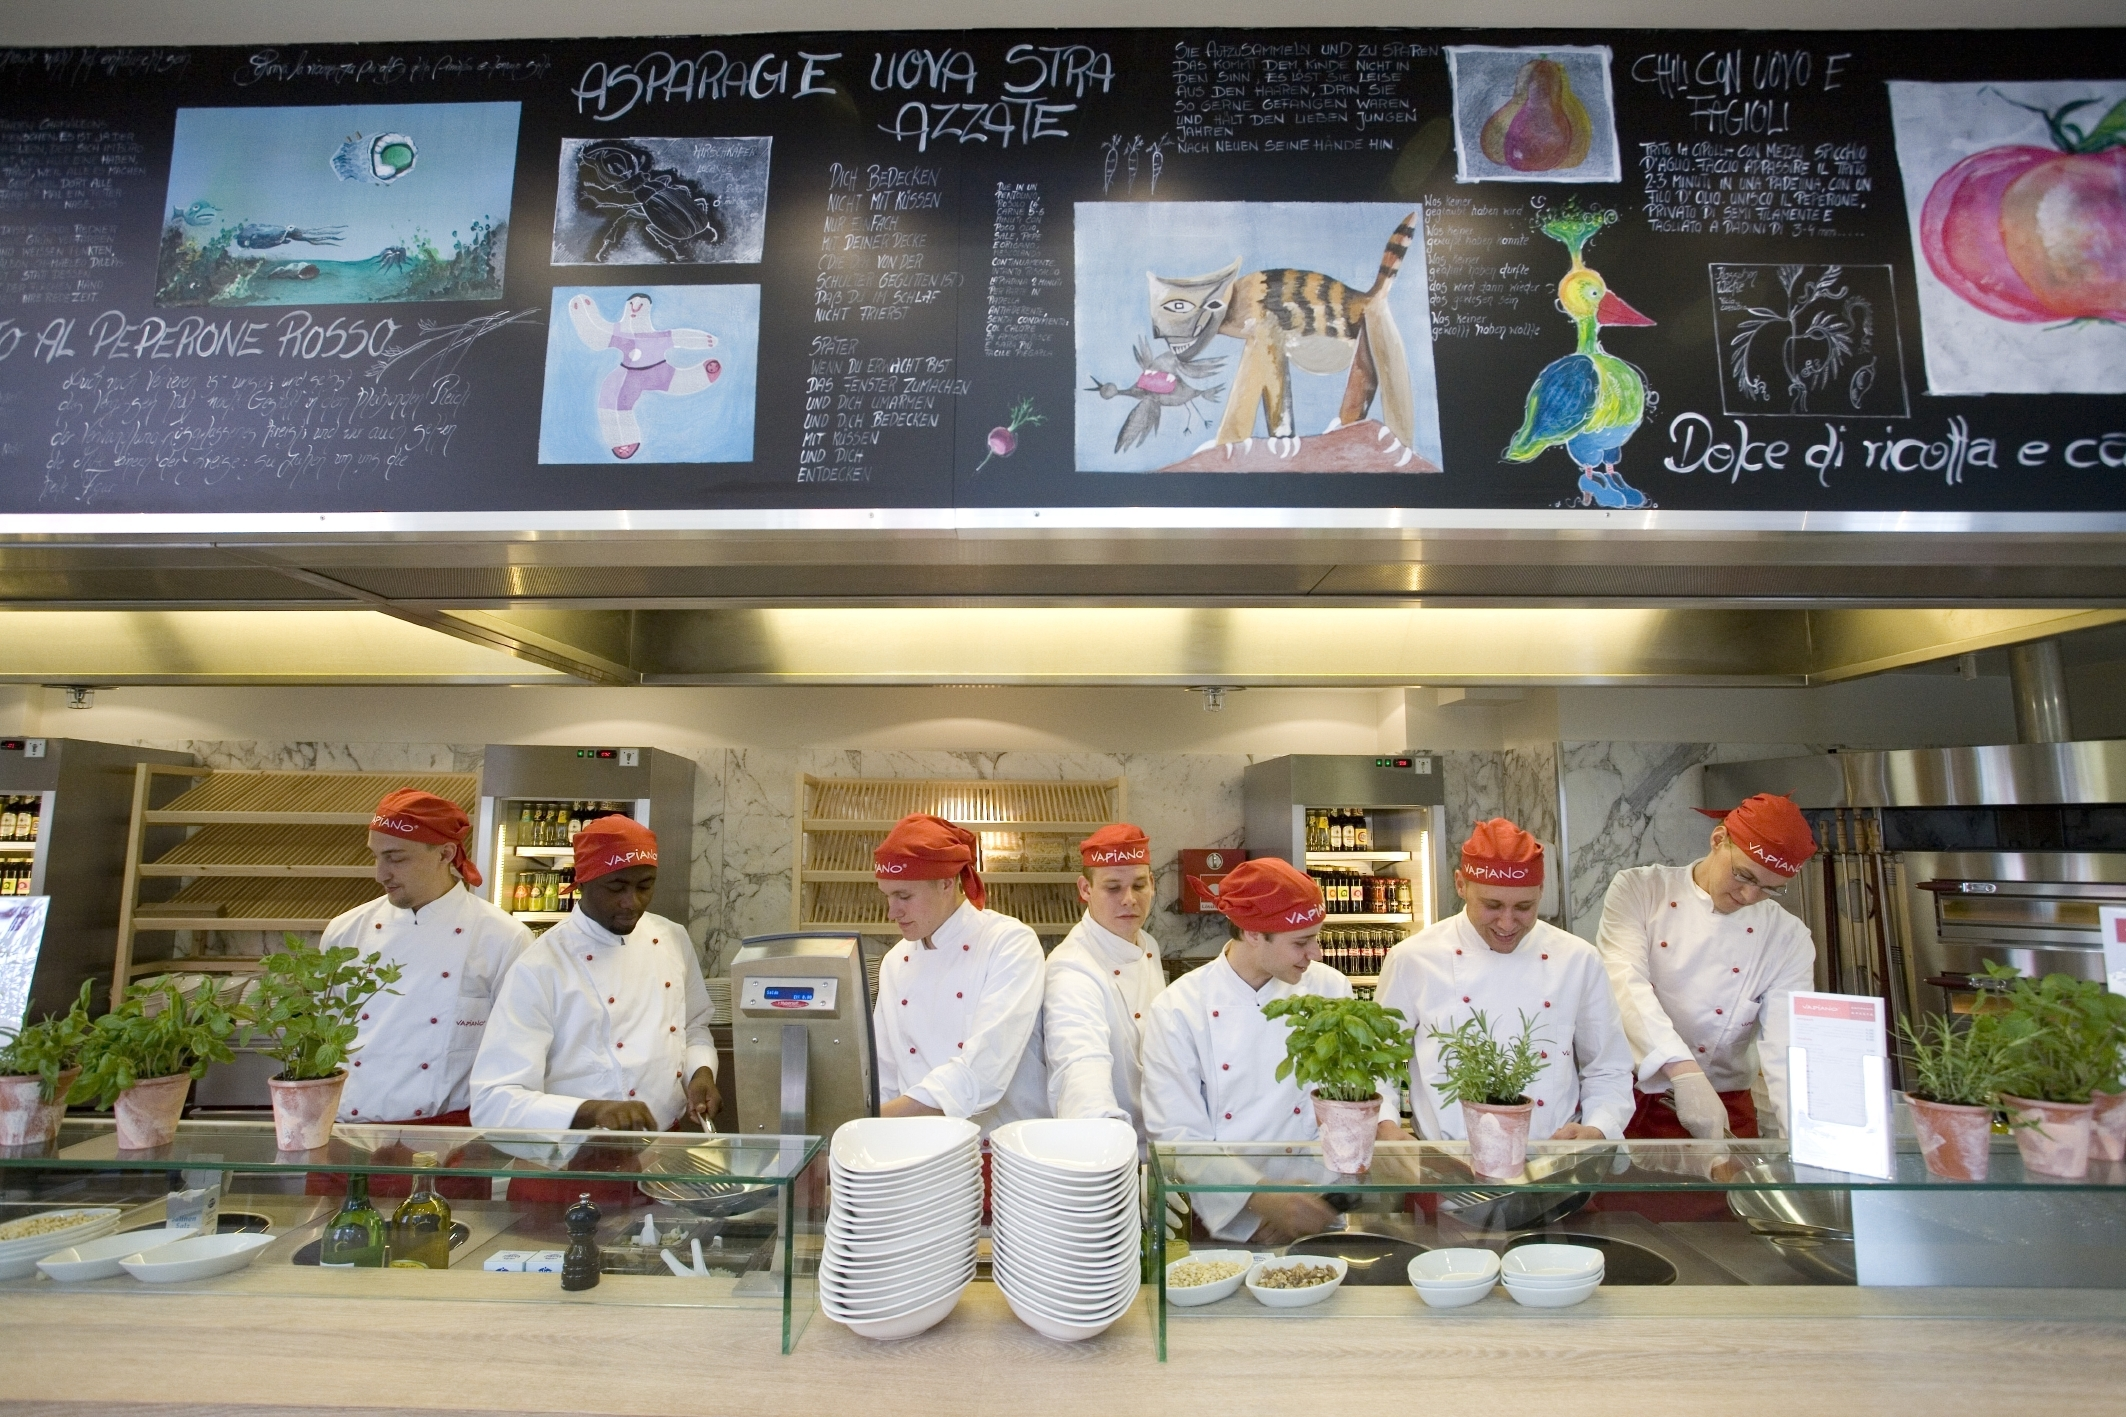 Front Cooking ist bei Vapiano Standard